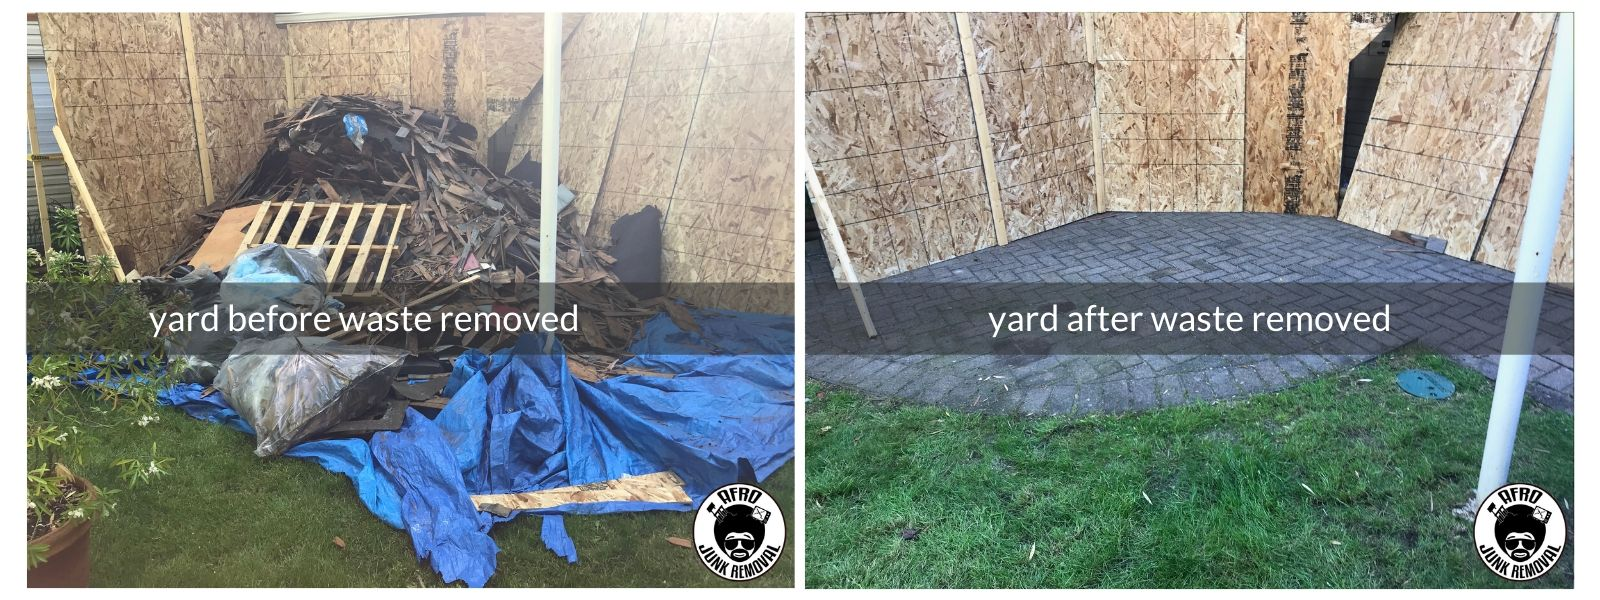 Yard Waste Removal Photos